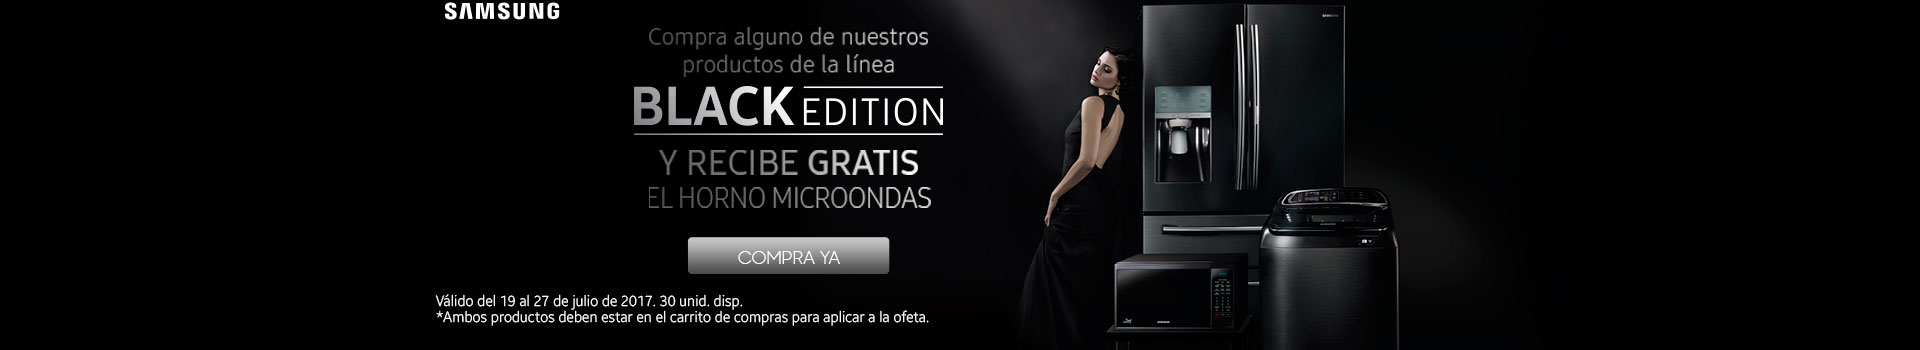 CAT ELECT - Pauta SAMSUNG BlanckEdition GRATIS Microondas - jul19